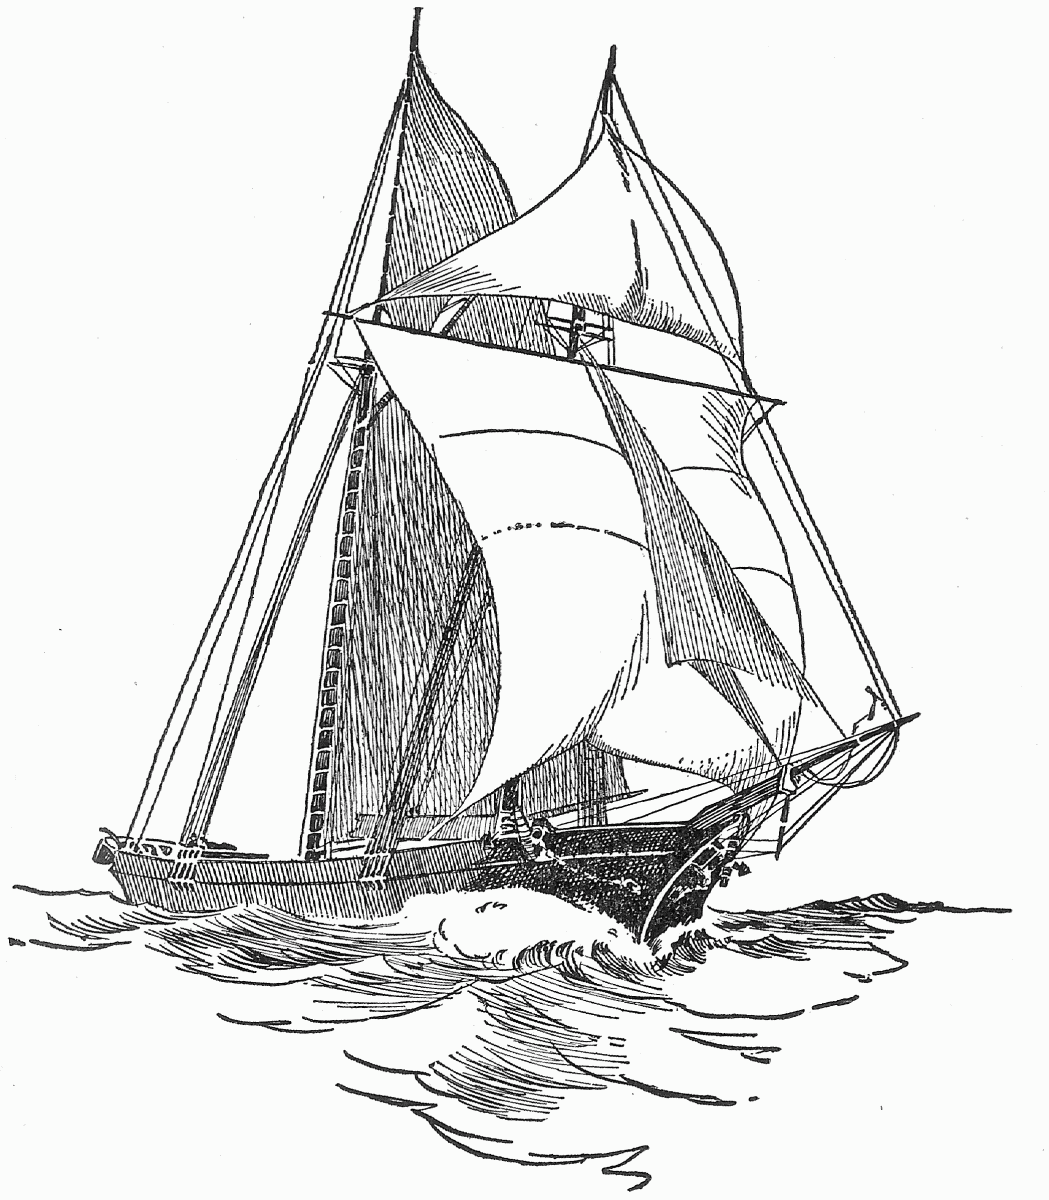 the project gutenberg ebook of american merchant ships and sailors Volkswagen Van Inside the project gutenberg ebook of american merchant ships and sailors by willis j abbot